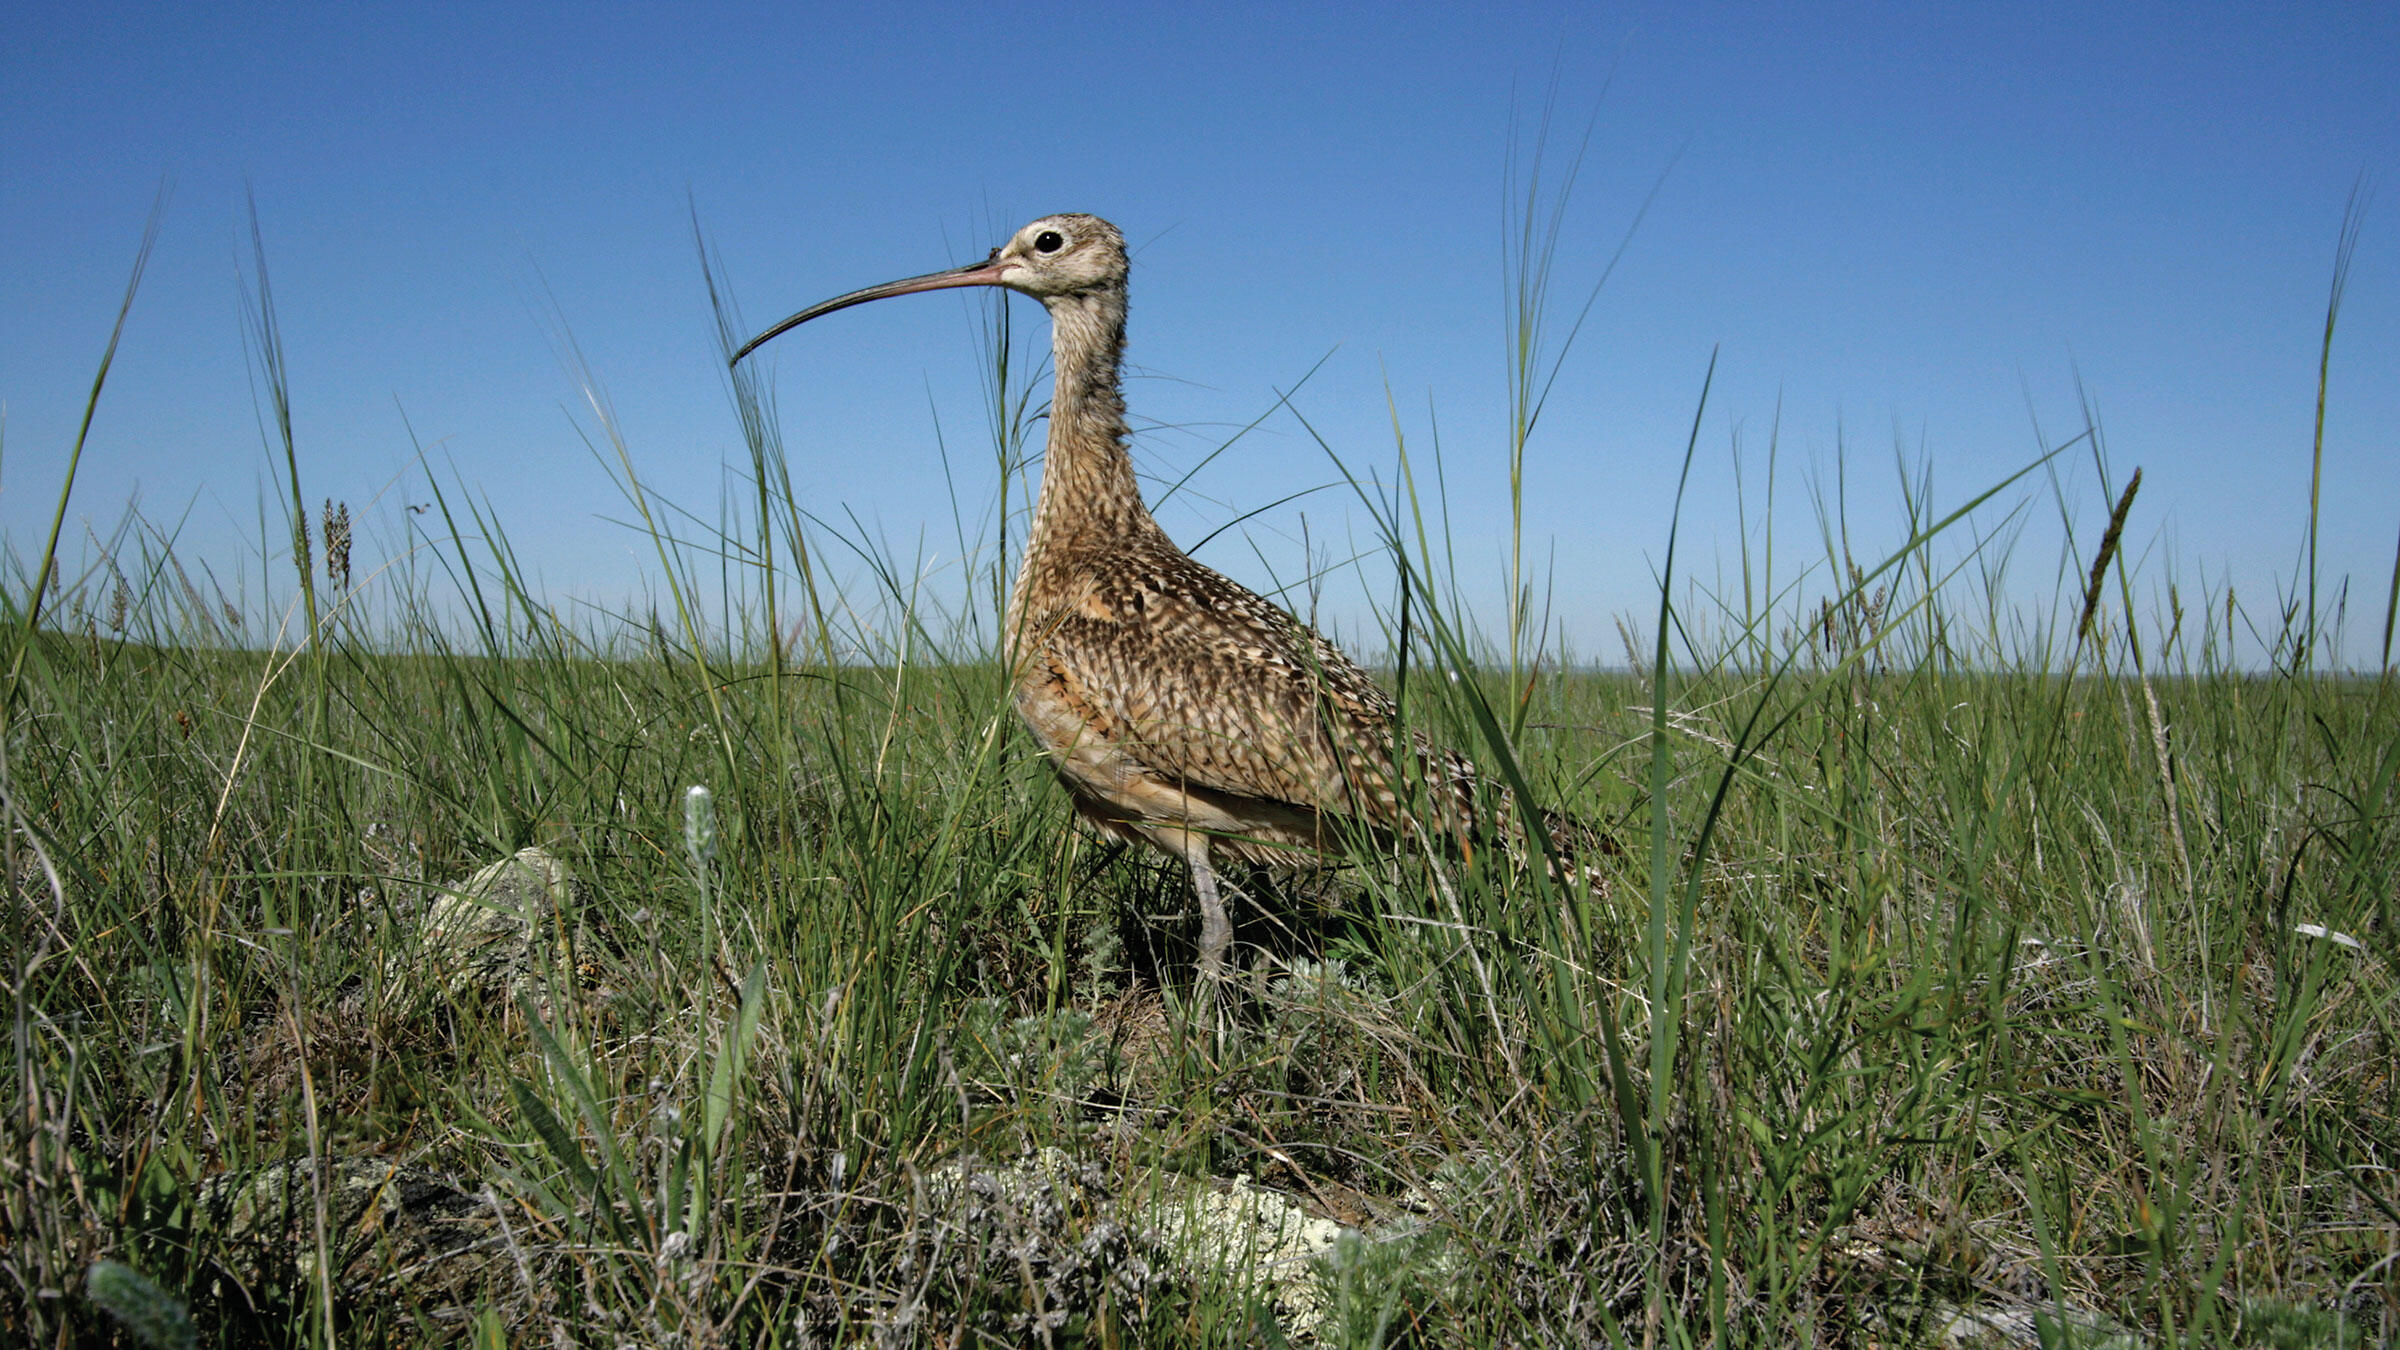 The Long-billed Curlew needs a whole range of prairie habitat to feed, breed, and raise its babies. Ranchers who maintain a mosaic of grasses can help host the climate-endangered shorebirds on their lands. Michael Forsberg